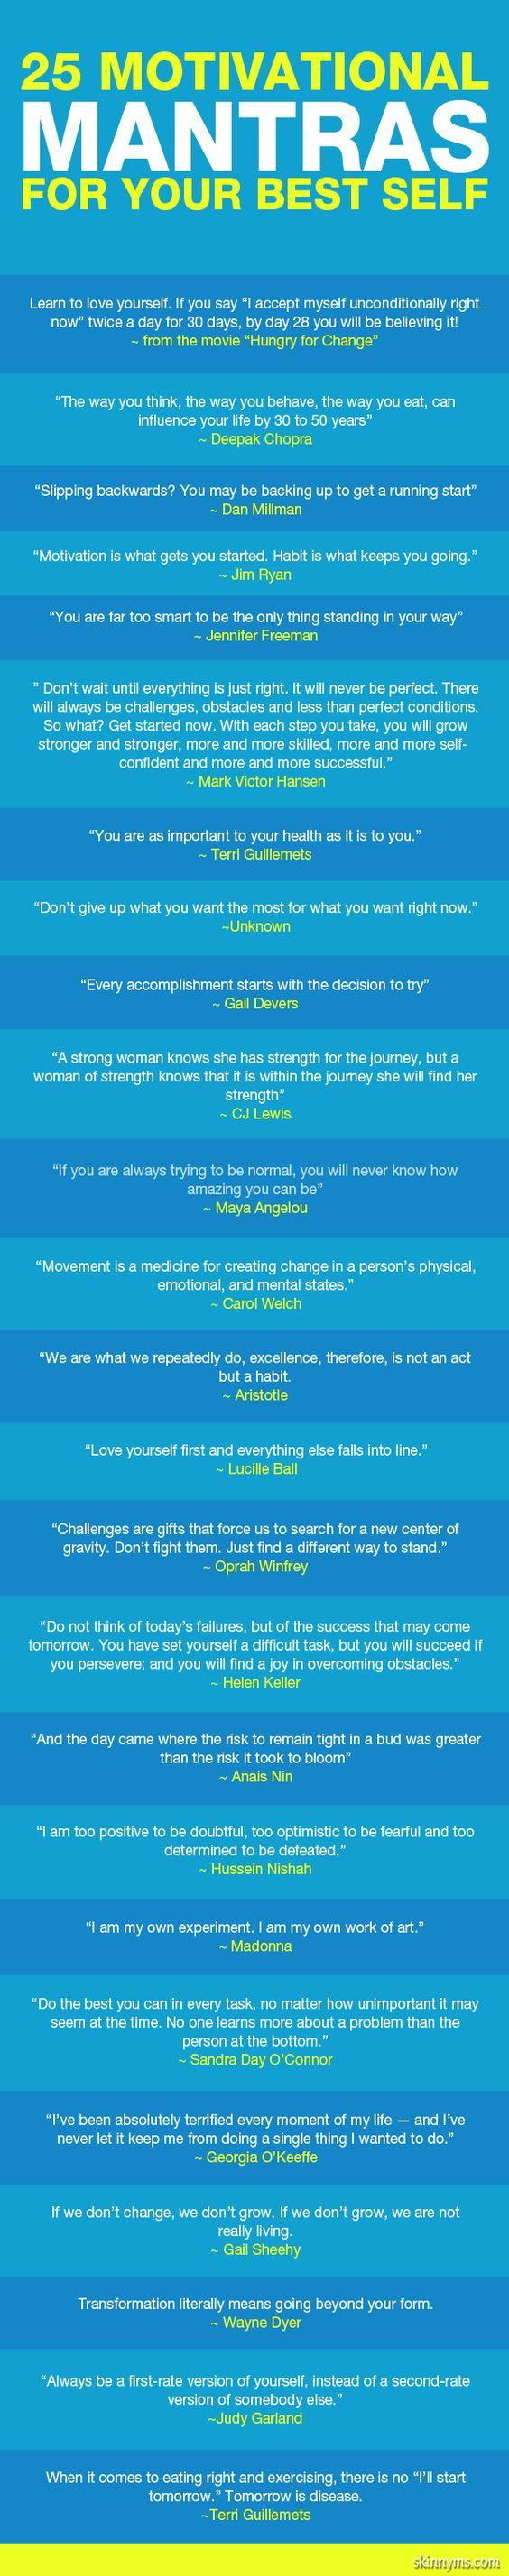 Here are 25 Motivational Mantras for Your Best Self